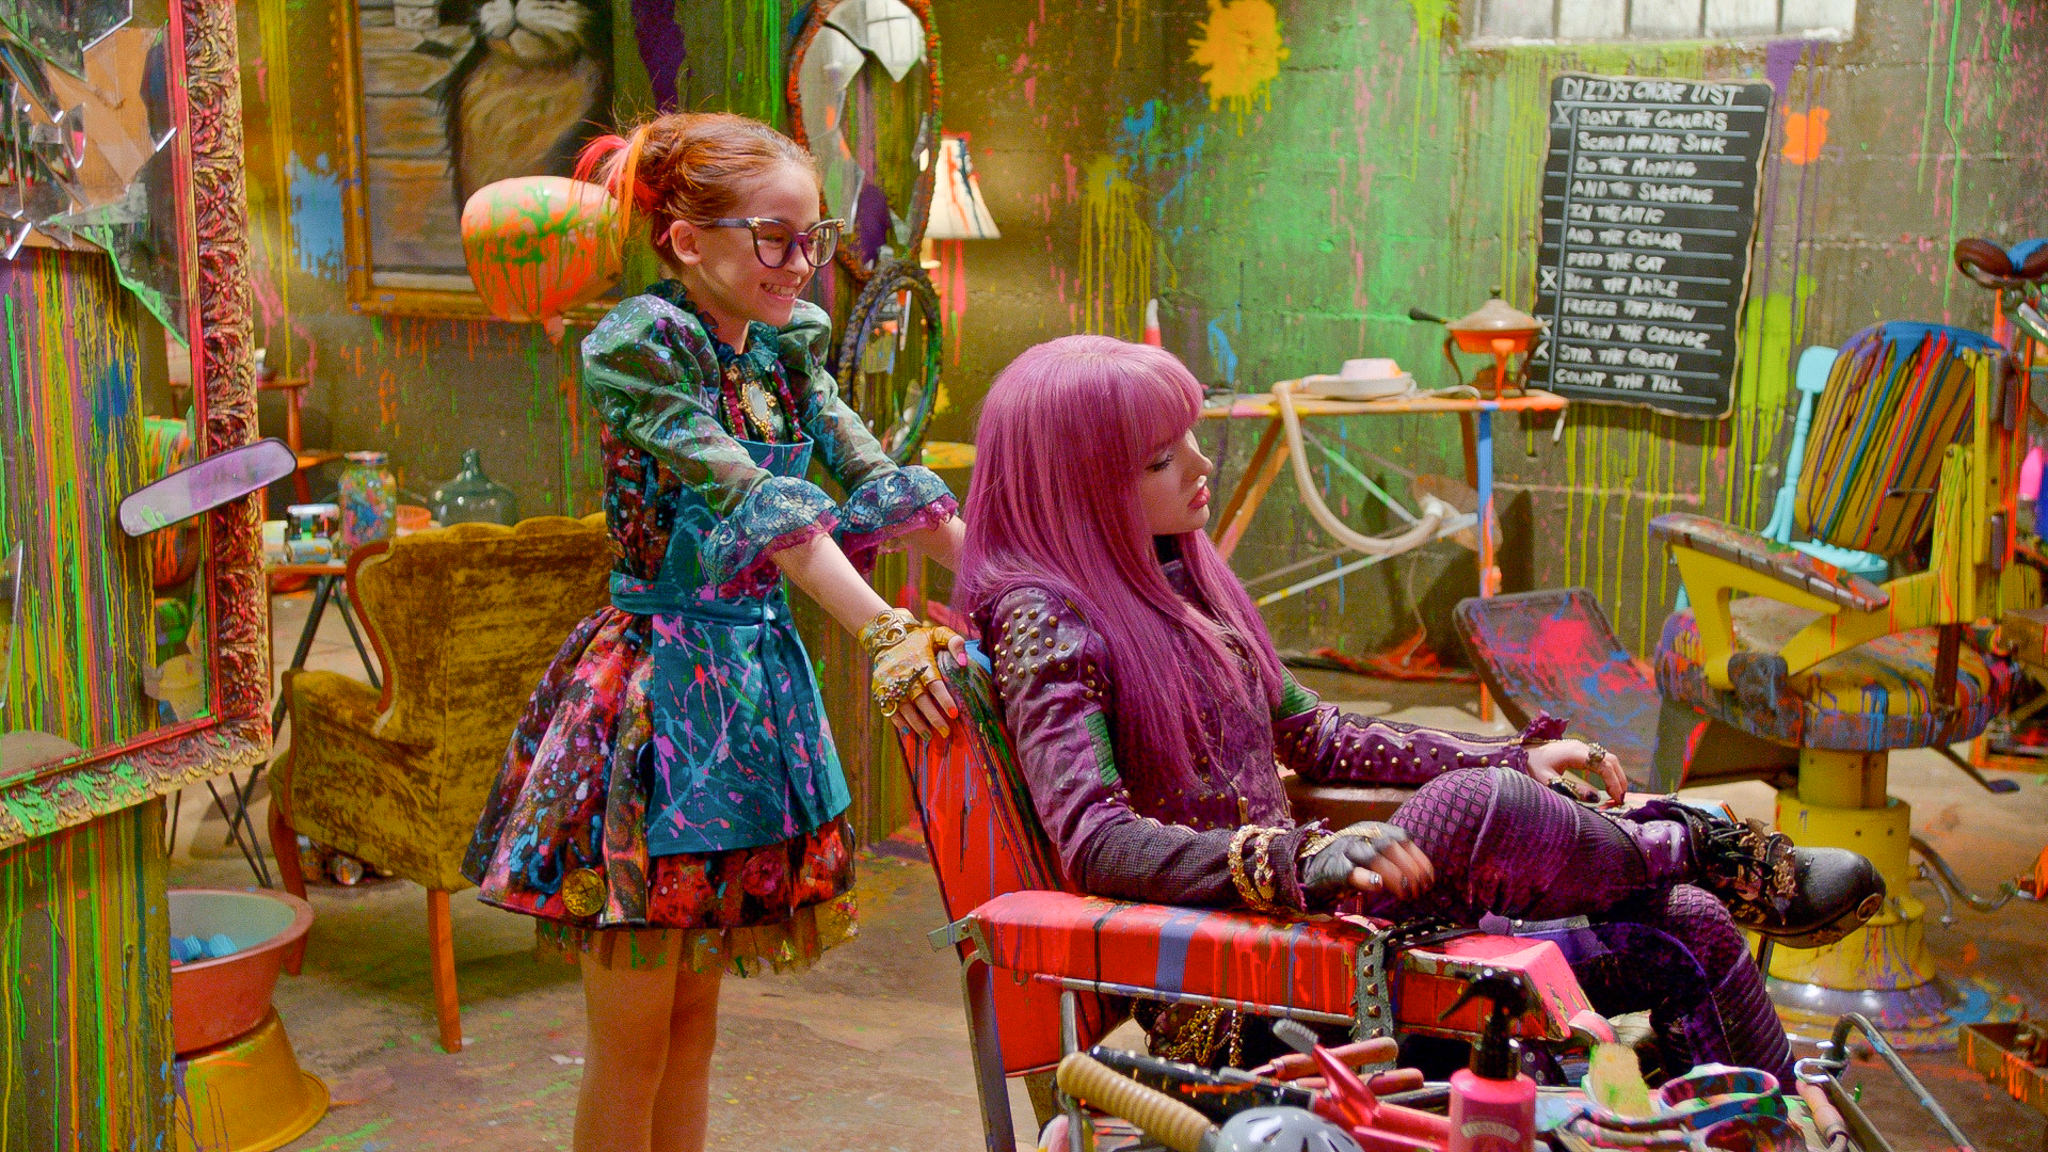 Mal (Dove Cameron) Gets a consultation from Dizzy (Anna Cathcart) in the madness of Drizella's Curl Up and Dye on the Isle of the Lost.